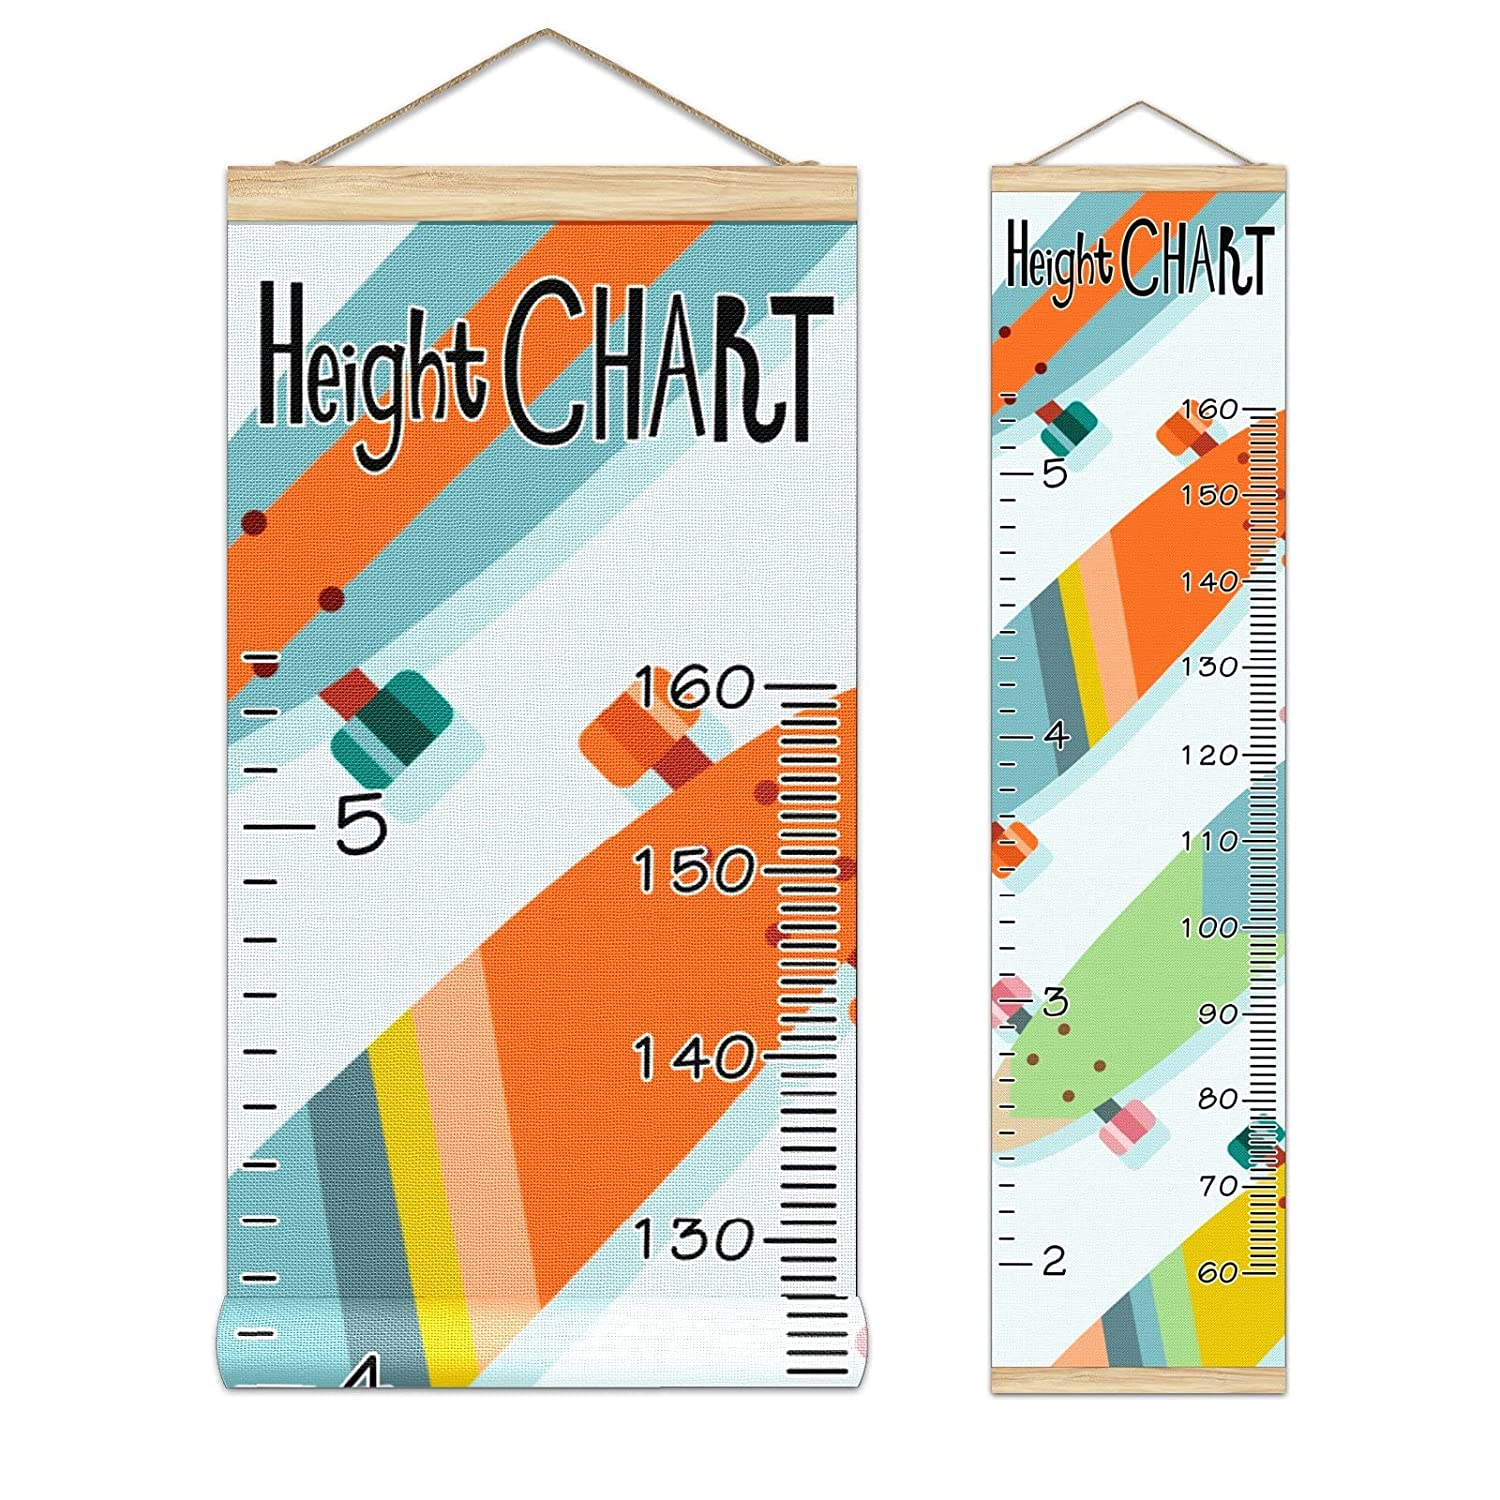 Be super welcome Kids Growth Chart Ruler for Measure Height Frame Super intense SALE Wood Wall